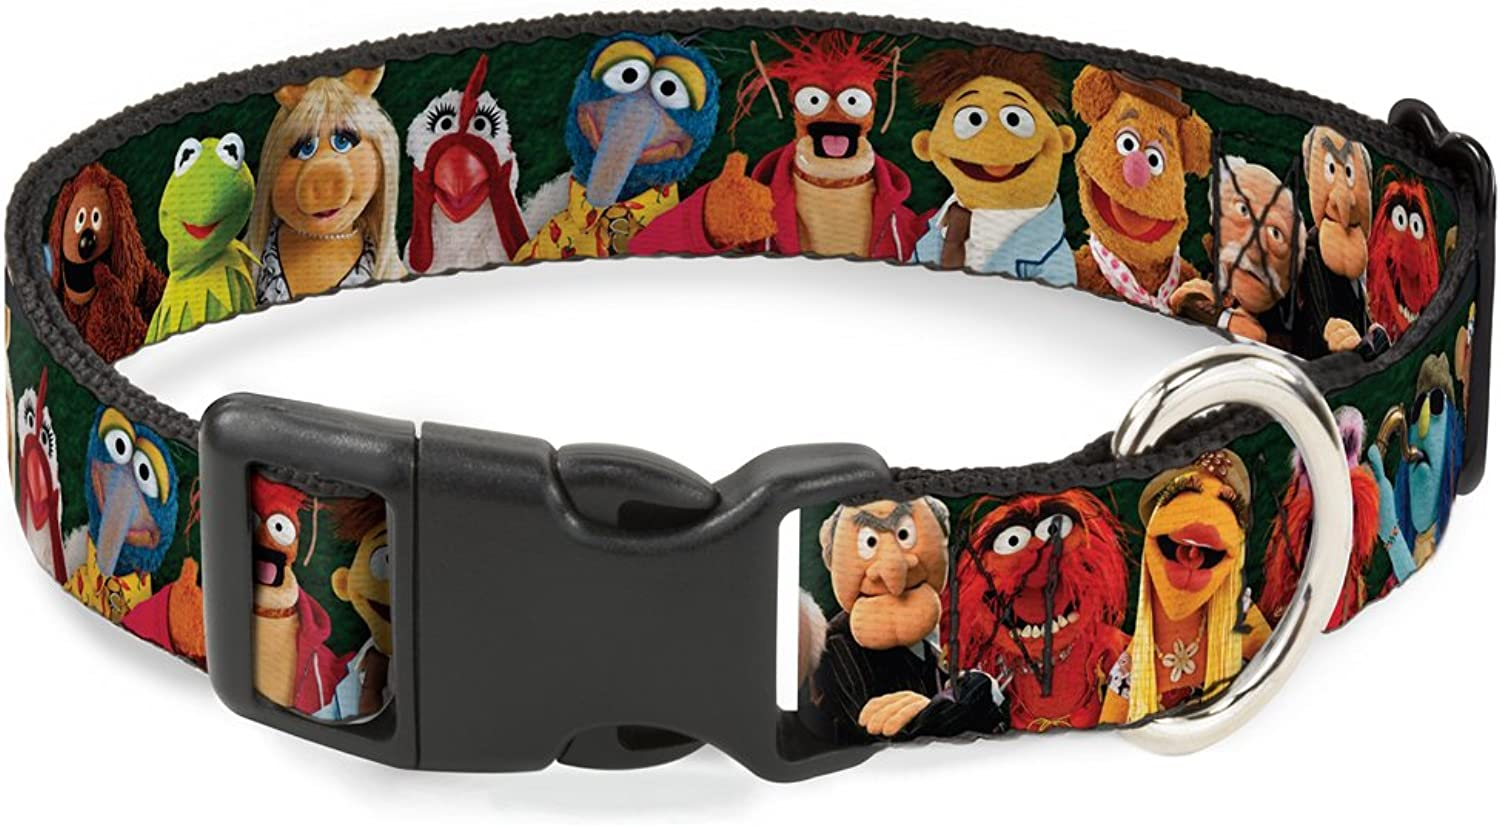 BuckleDown PCWDY281WM Dog Collar Plastic Clip Buckle, Muppets 20Character Group Pose Greens, 16 23